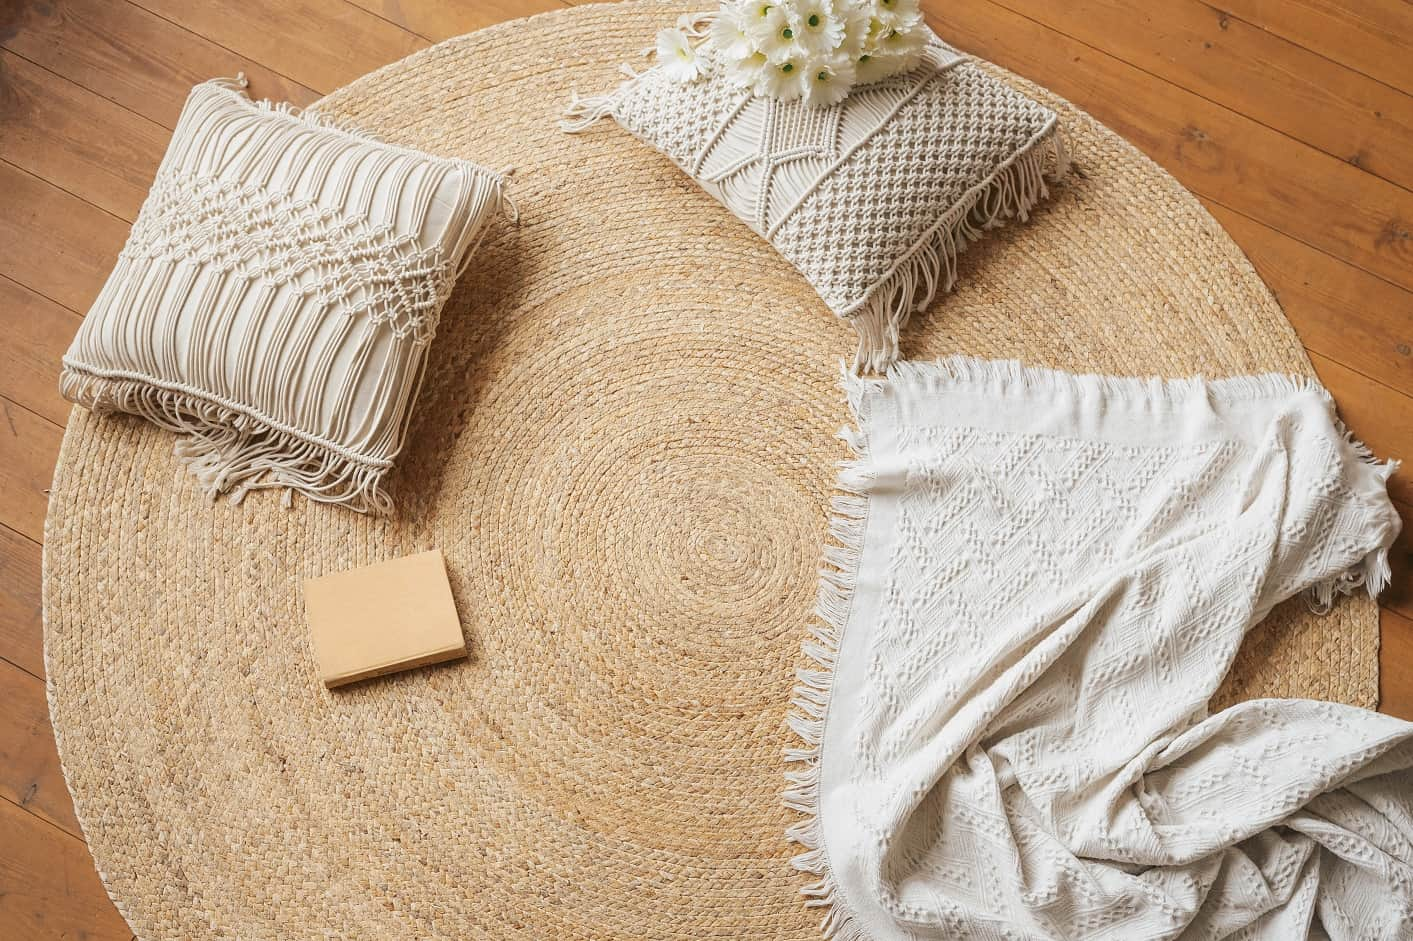 a cozy place to read on the floor jute woven